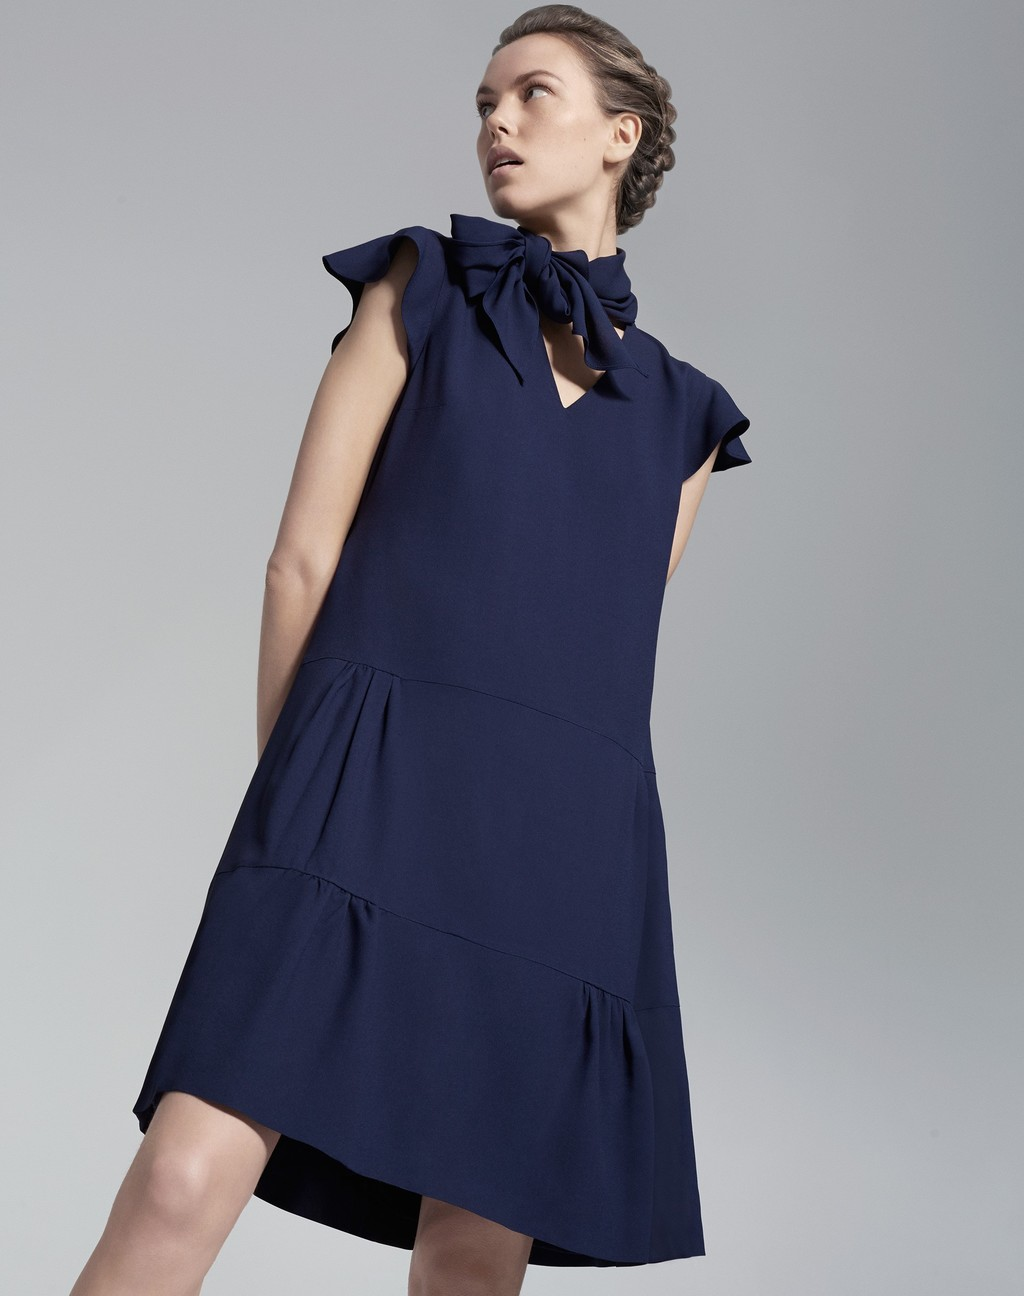 Garden Party Dress French Blue - style: trapeze; length: mid thigh; sleeve style: capped; fit: loose; pattern: plain; neckline: pussy bow; predominant colour: navy; fibres: polyester/polyamide - 100%; hip detail: adds bulk at the hips; sleeve length: sleeveless; texture group: crepes; pattern type: fabric; occasions: creative work; season: s/s 2016; wardrobe: highlight